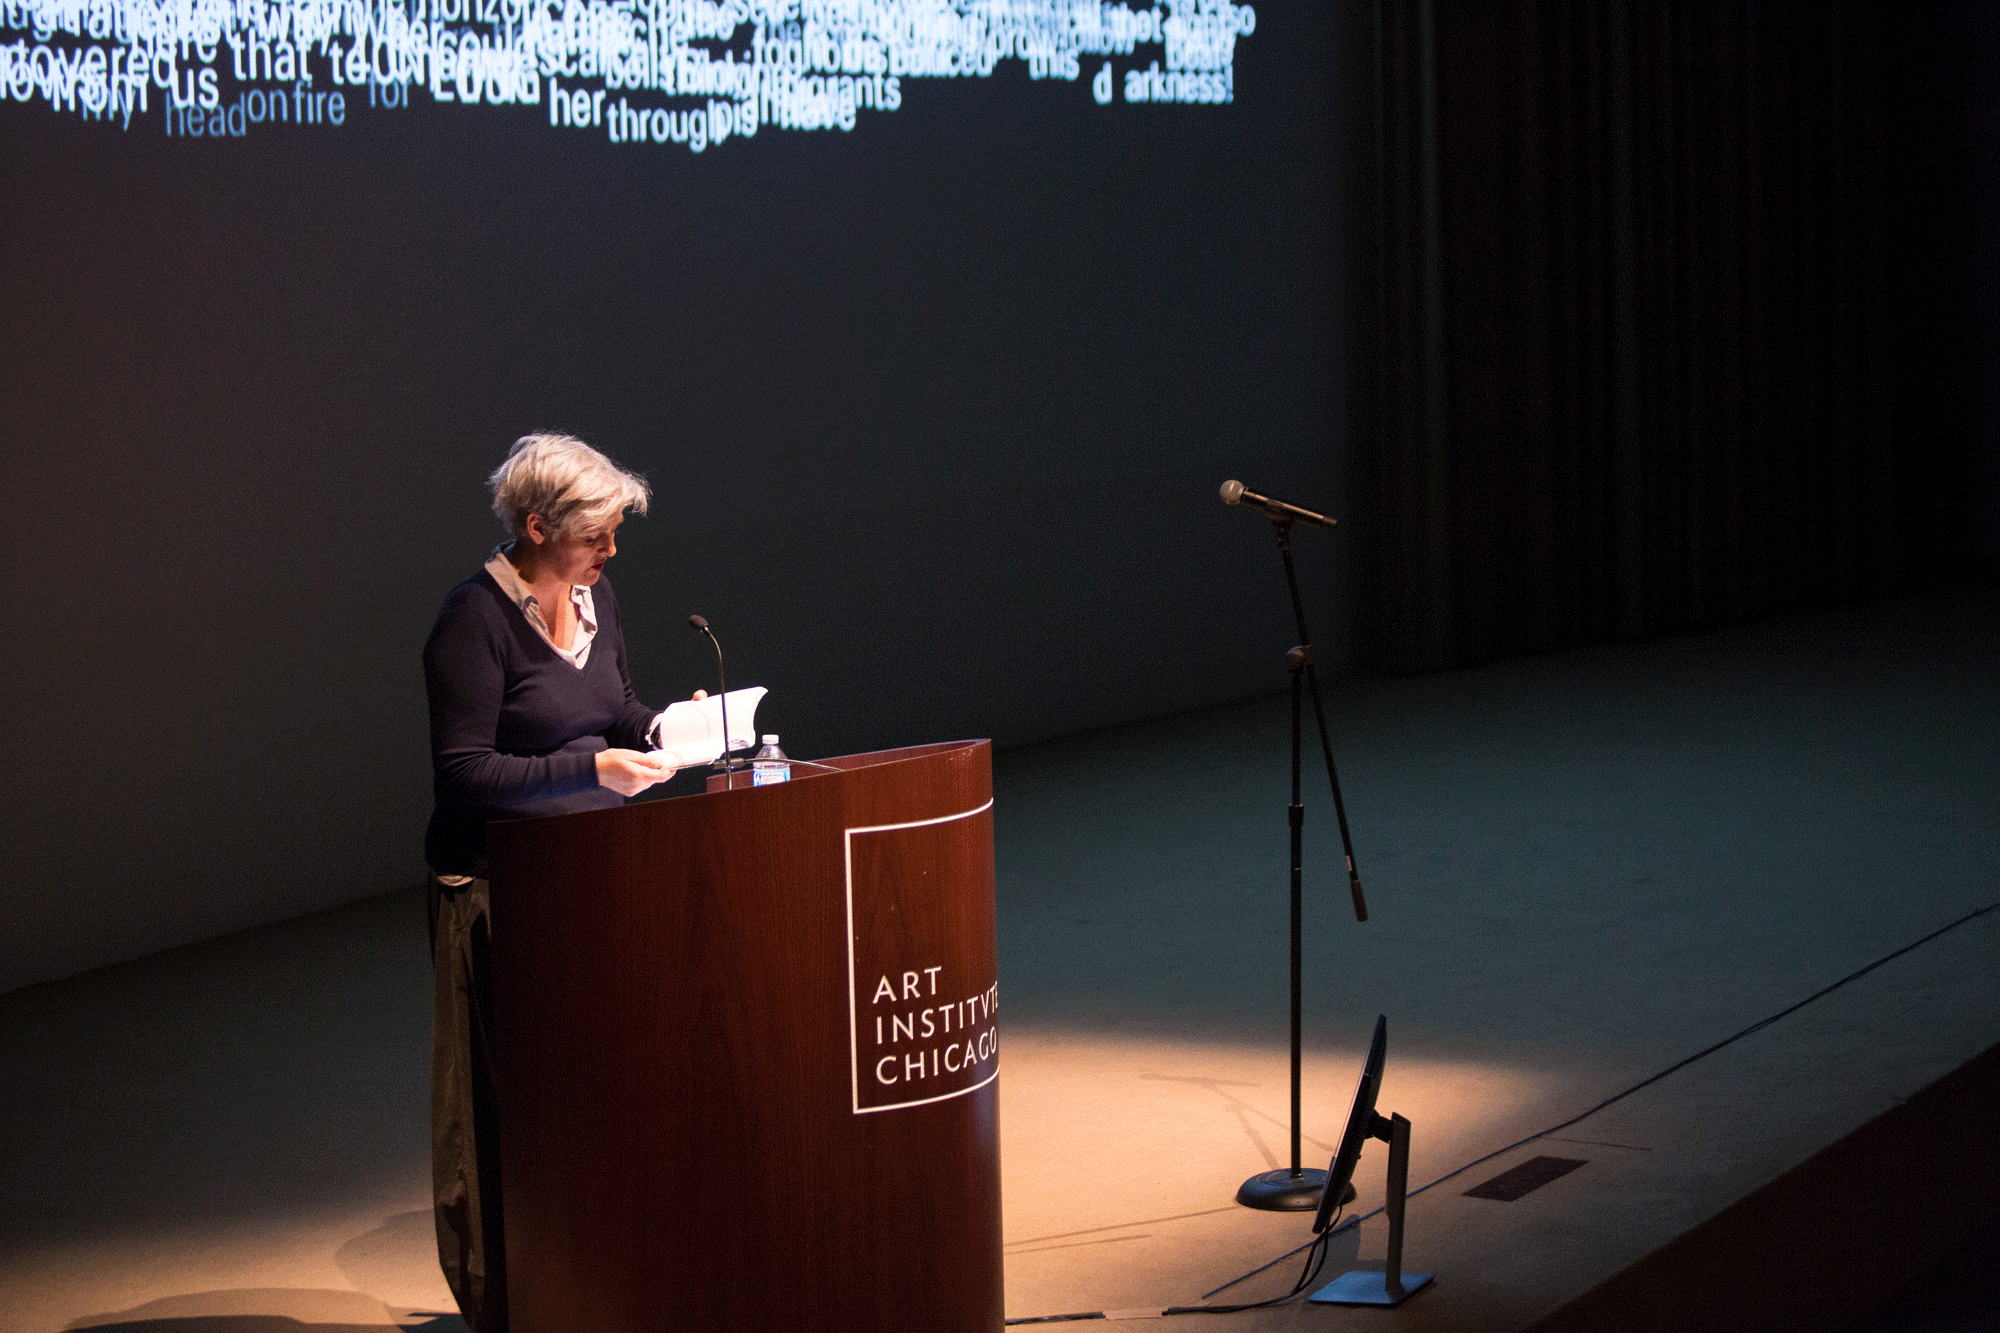 Caroline Bergvall presents at SAIC shortly after the November presidential election. Photograph by Farah Alhaidar. © 2016 School of the Art Institute of Chicago; All Rights Reserved